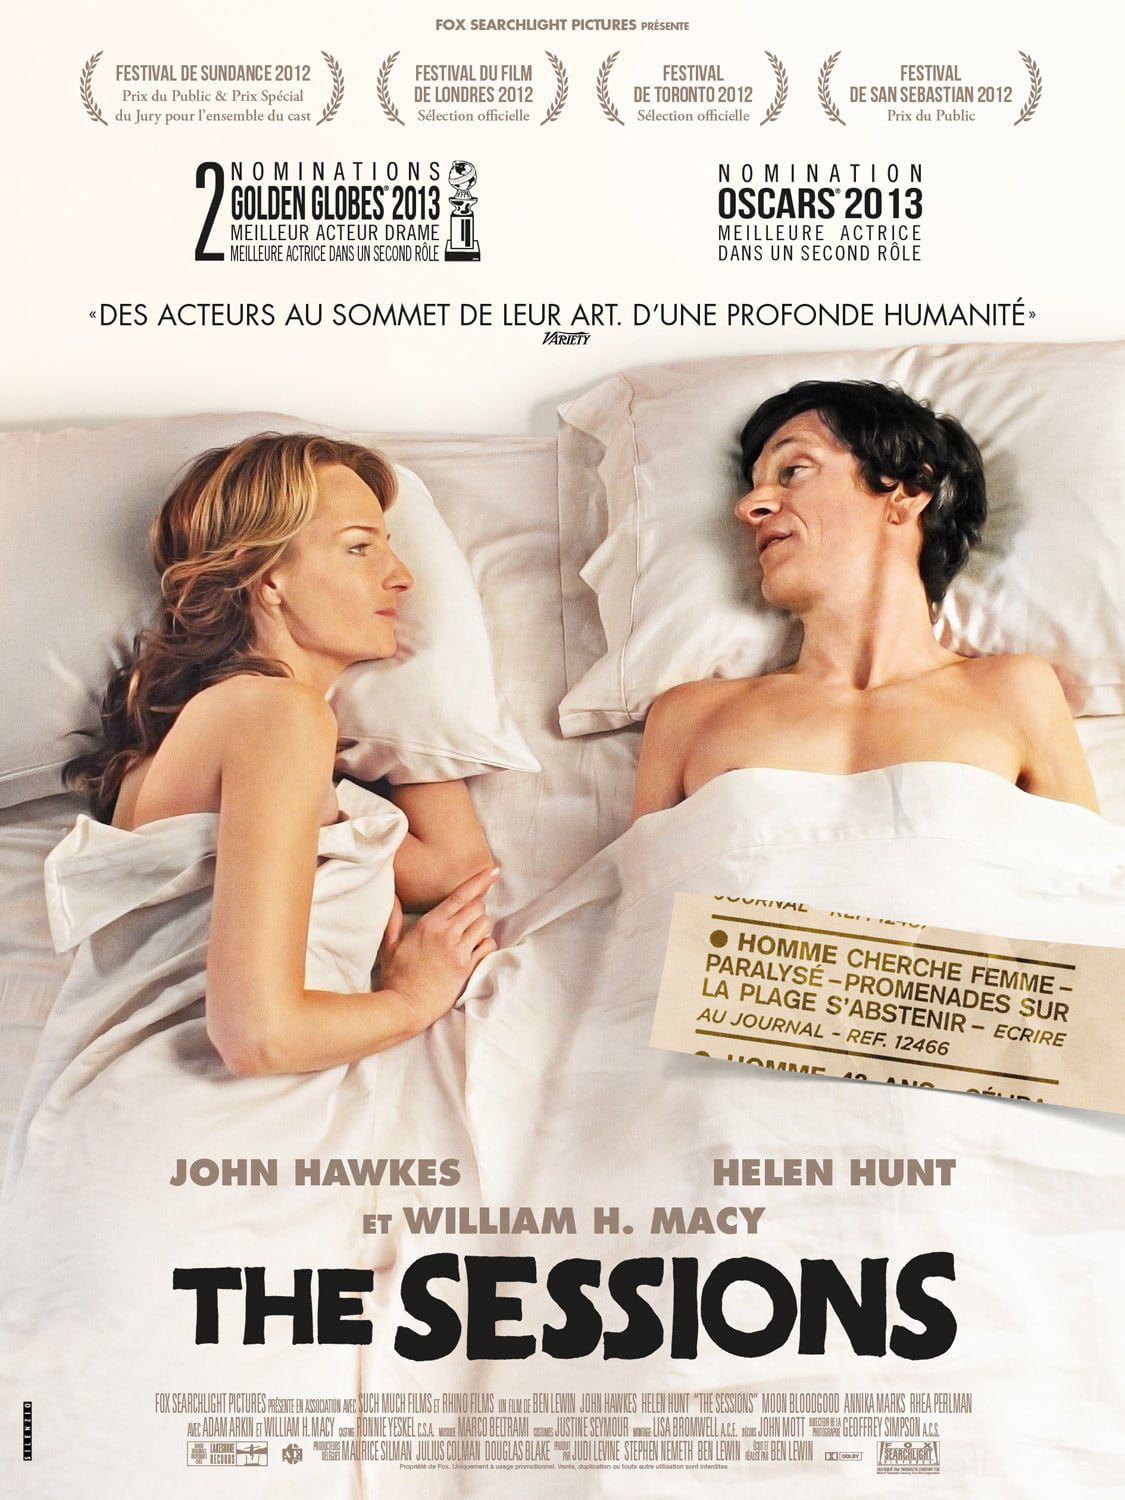 The Sessions - Film (2012)